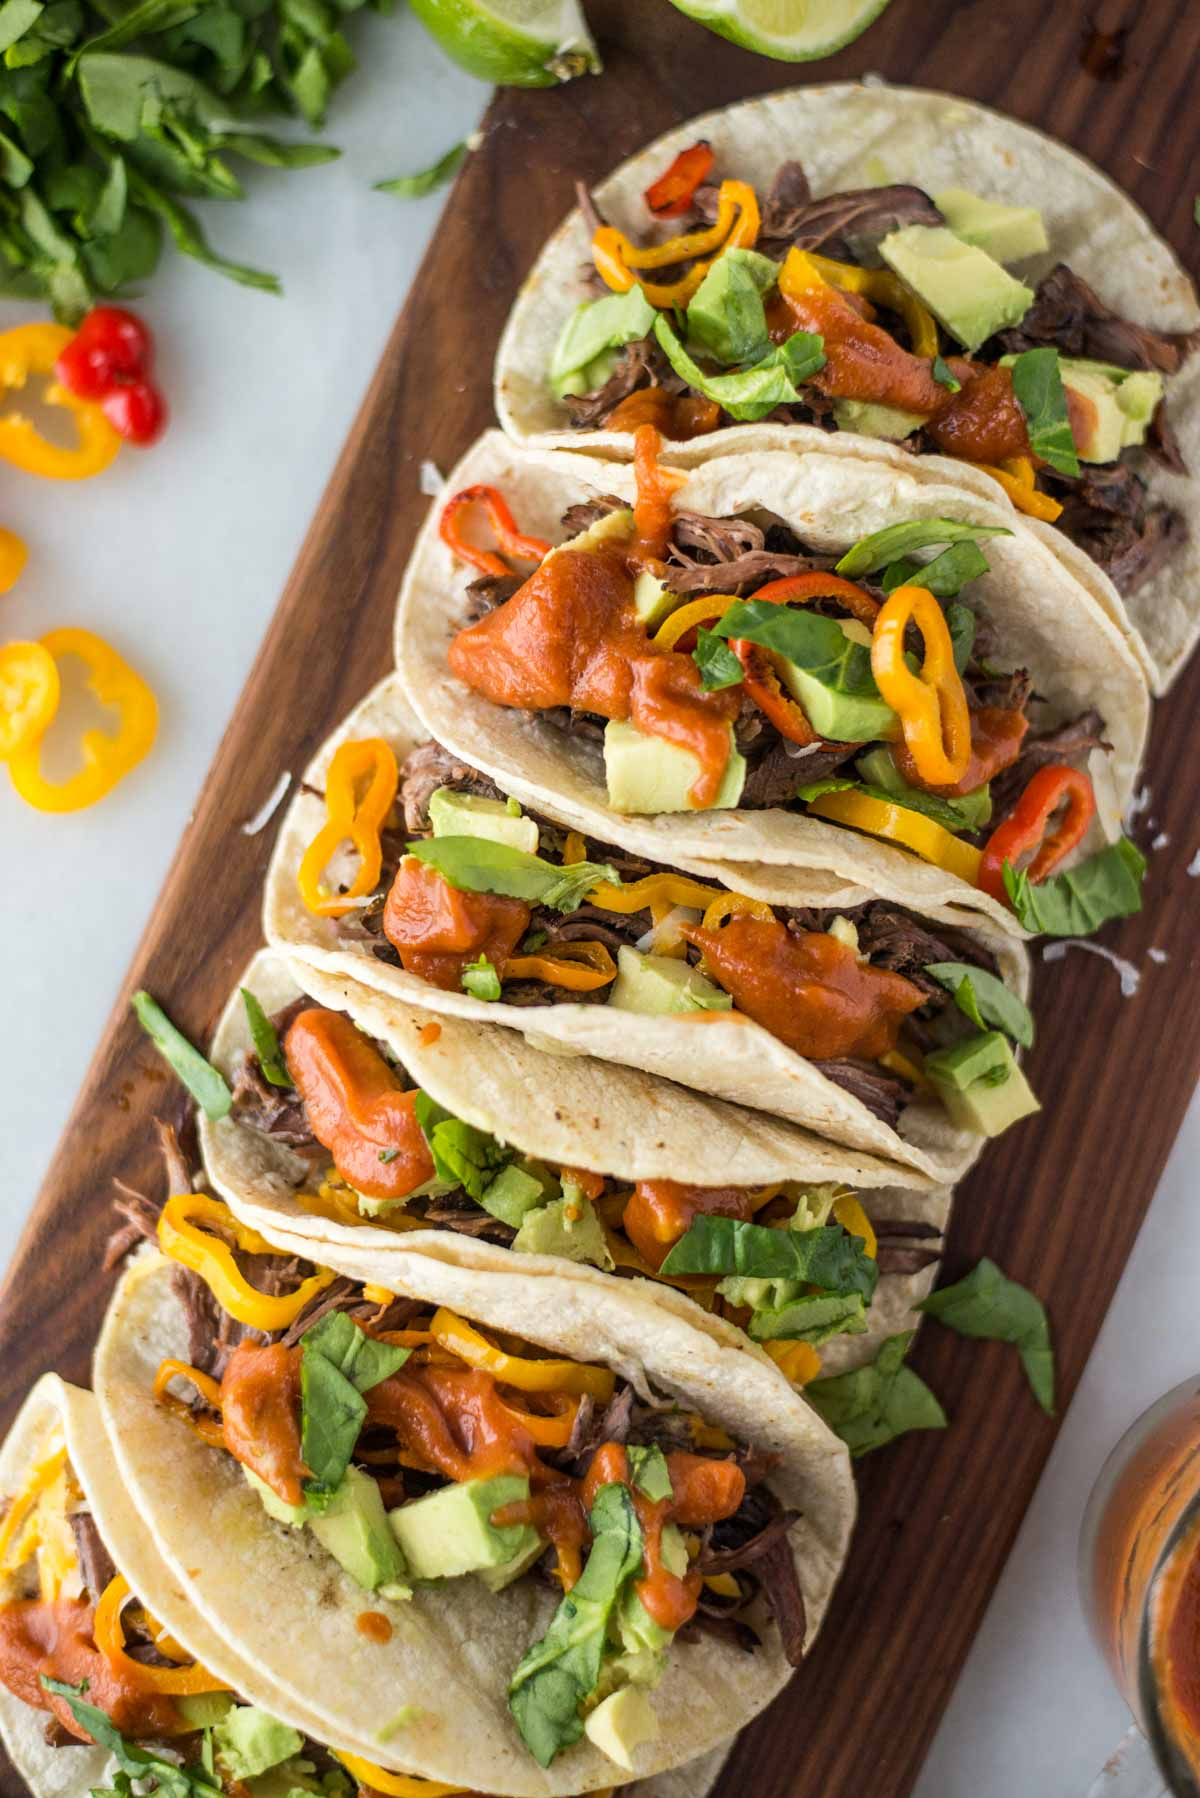 Beef Fajitas without all the work. A quick weeknight meal using one simple trick. Check it out here.